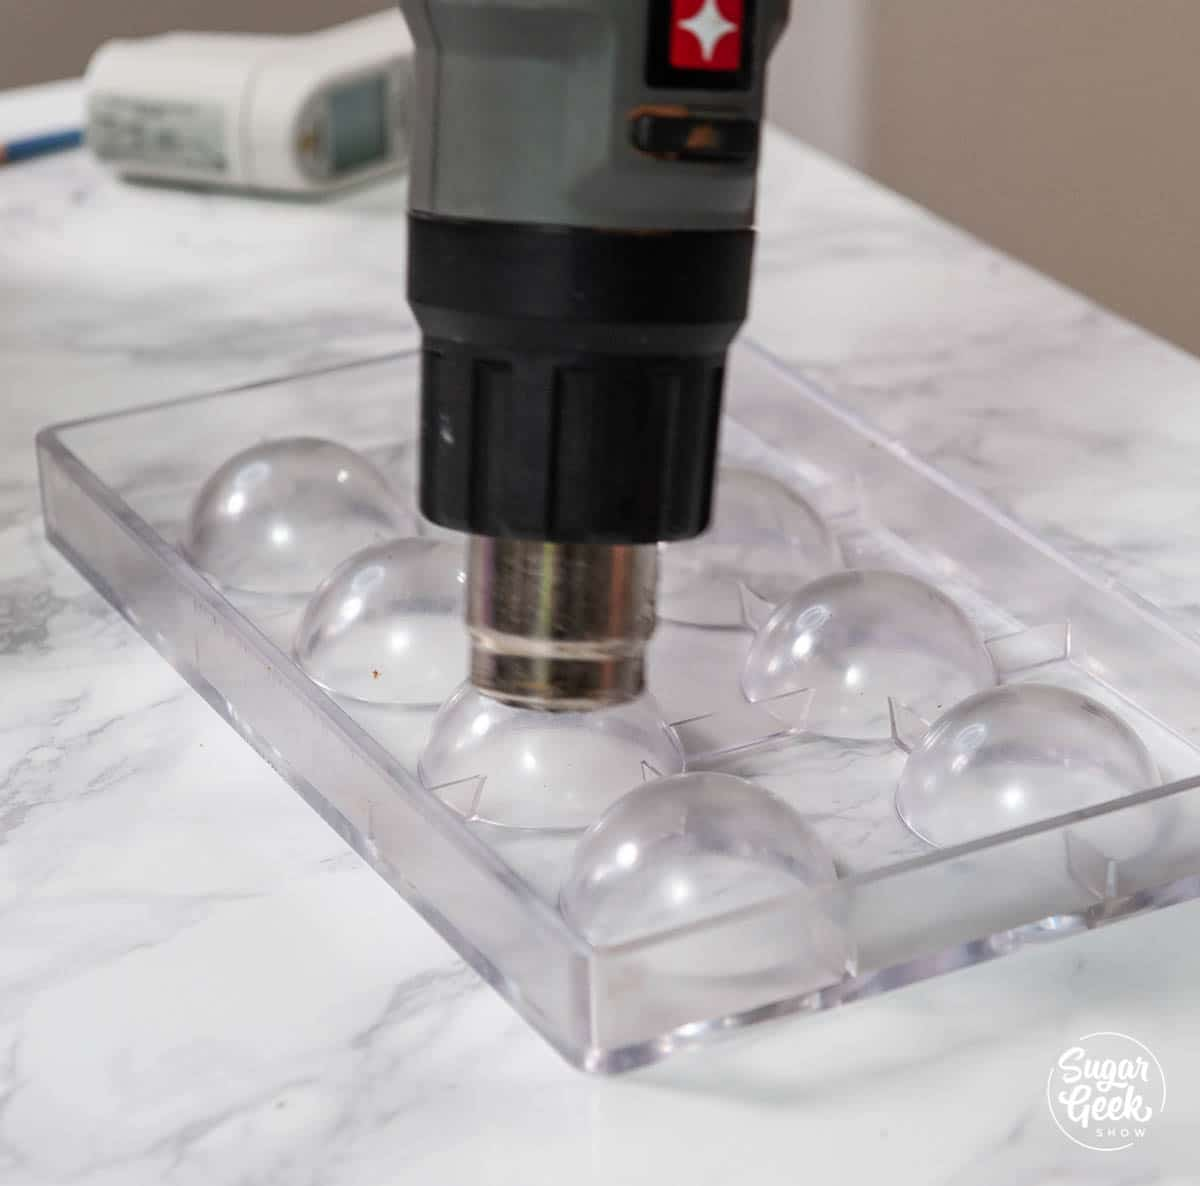 warming an acrylic sphere mold with a heat gun